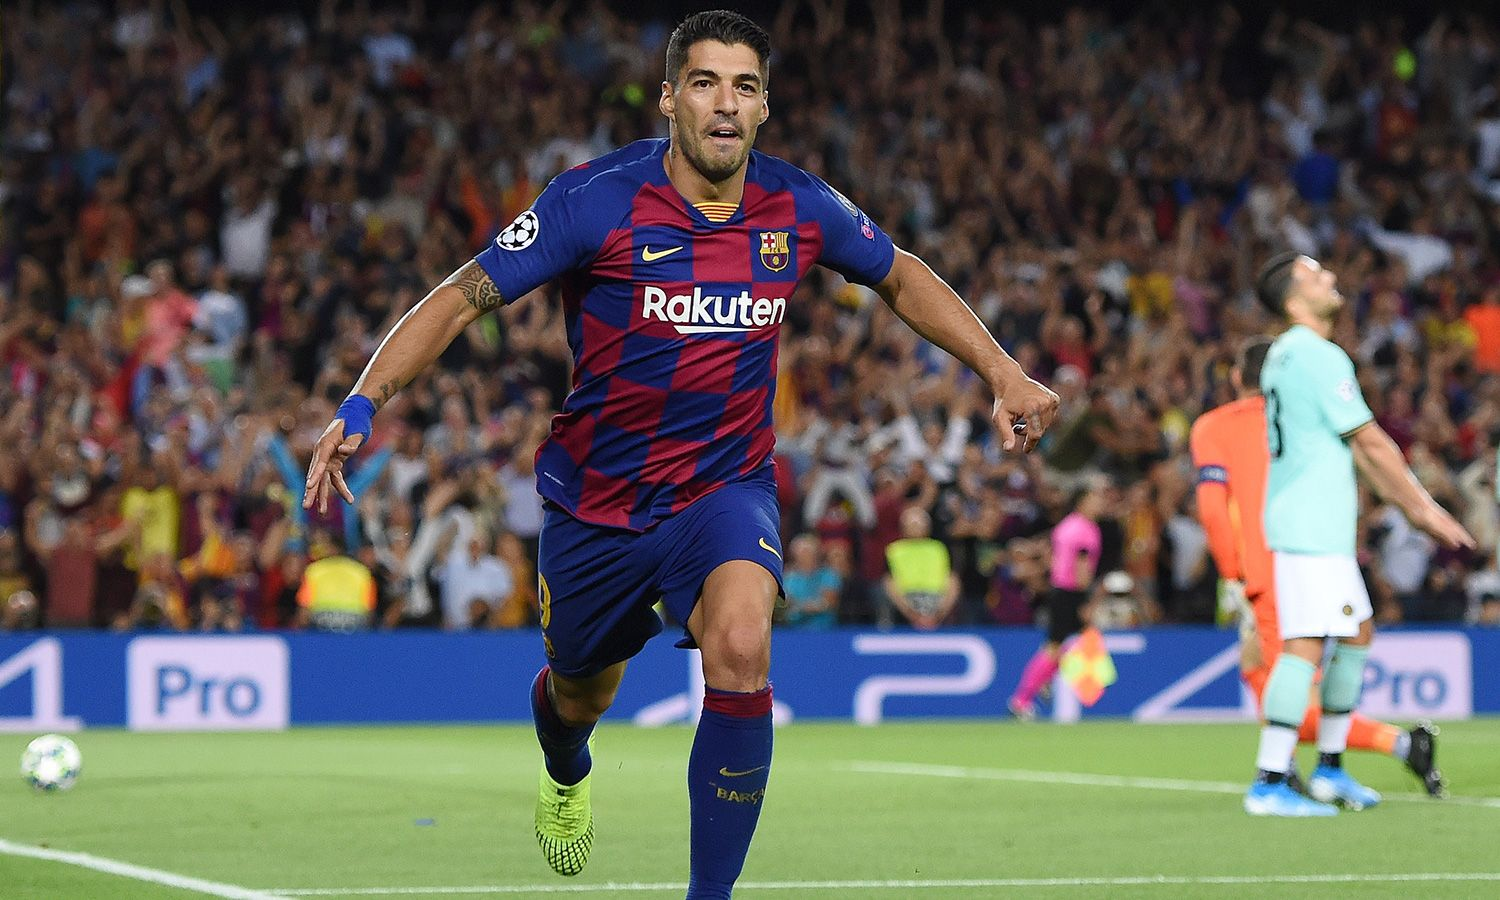 Luis Suarez ahead of schedule in recovery from knee injury - Bóng Đá